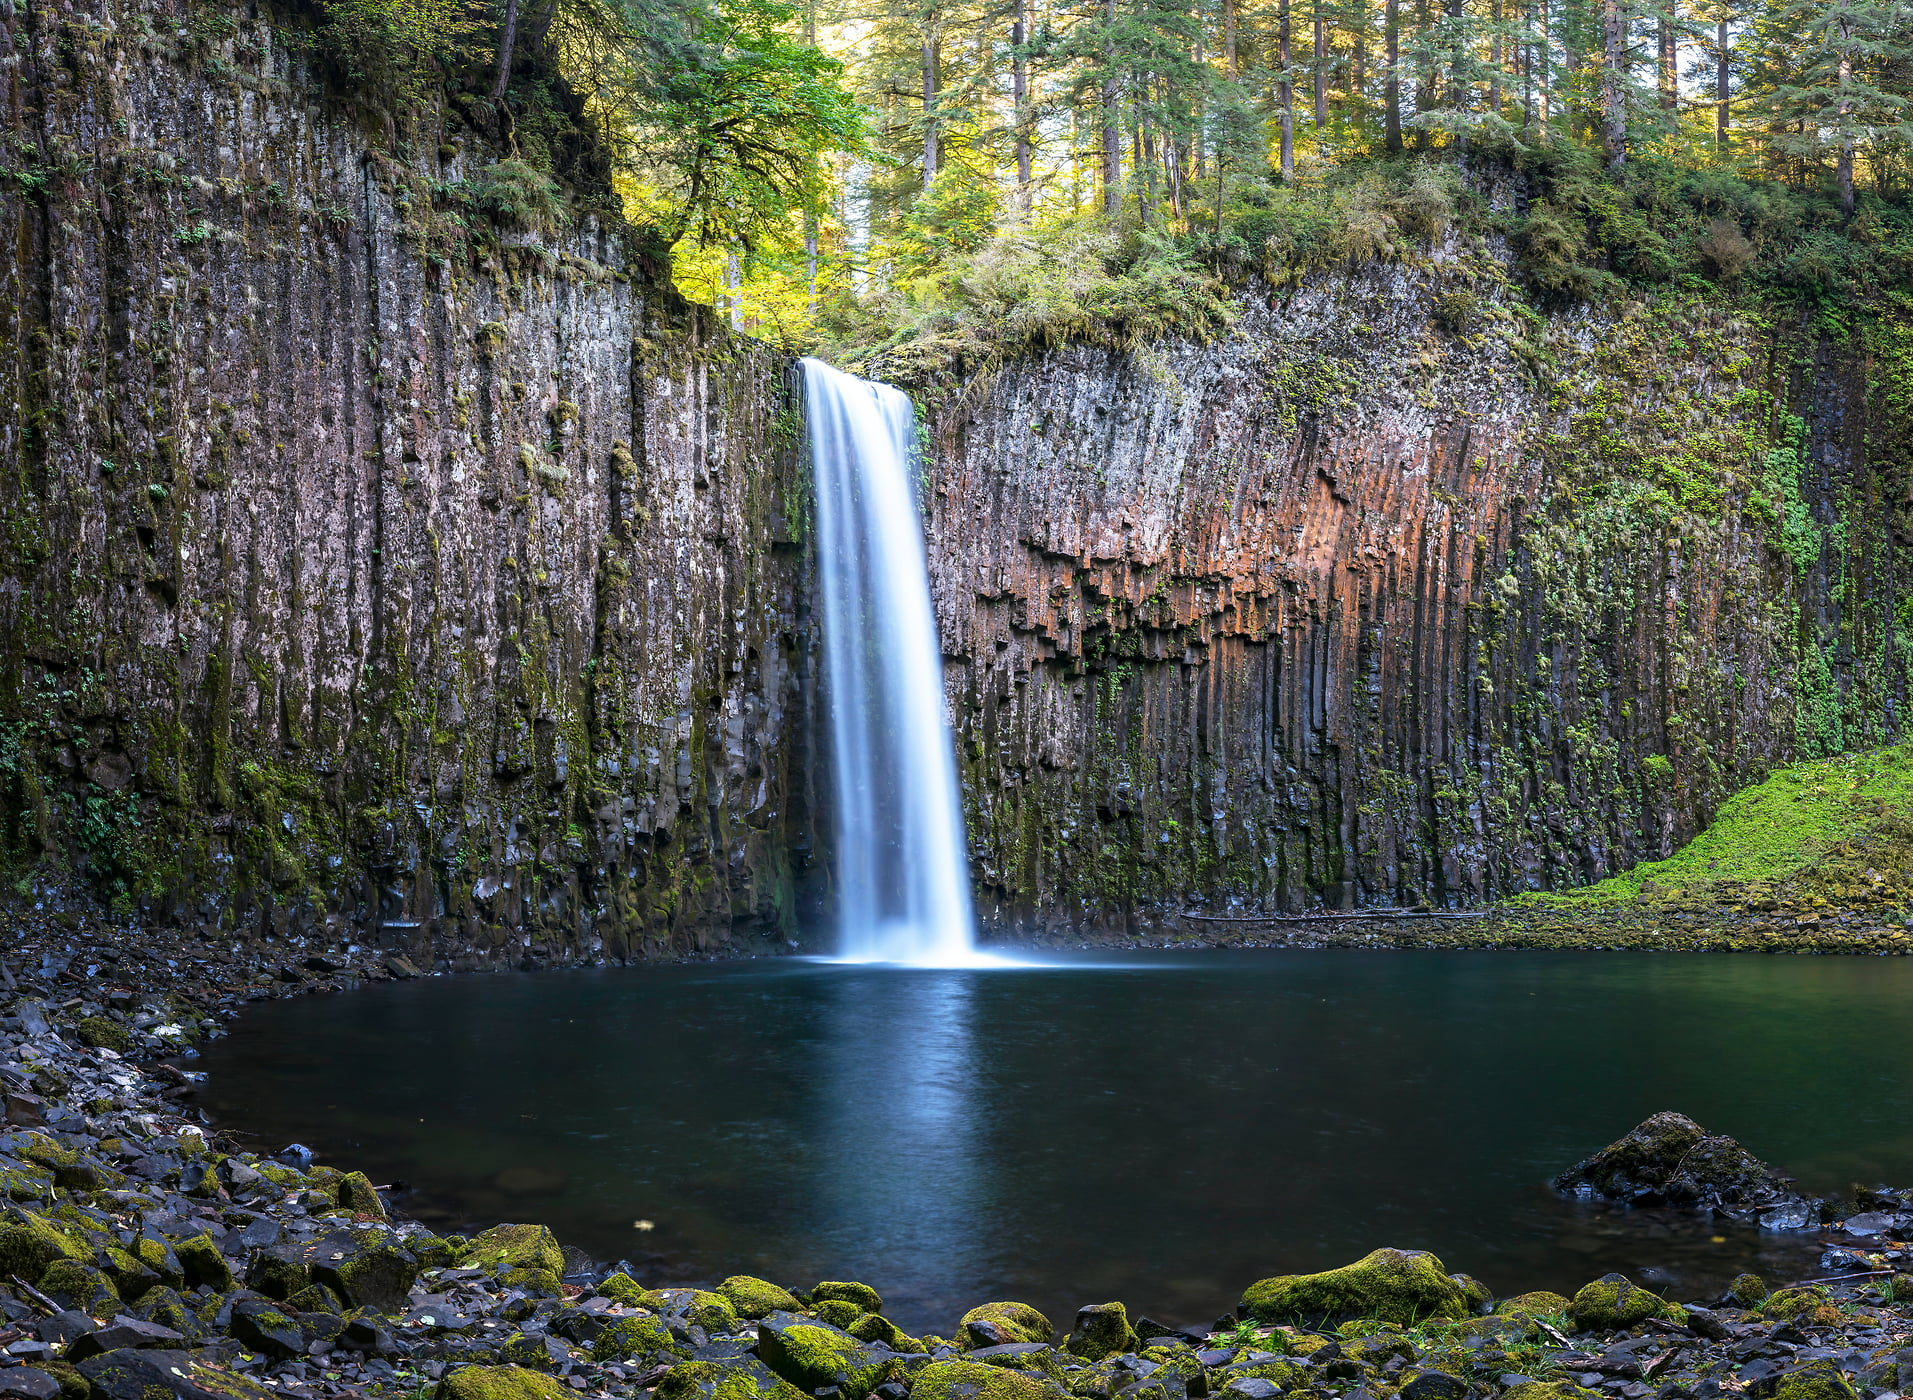 607 megapixels! A very high resolution, large-format VAST photo print of Abiqua Falls waterfall in a forest; nature fine art print created by Justin Katz in Oregon